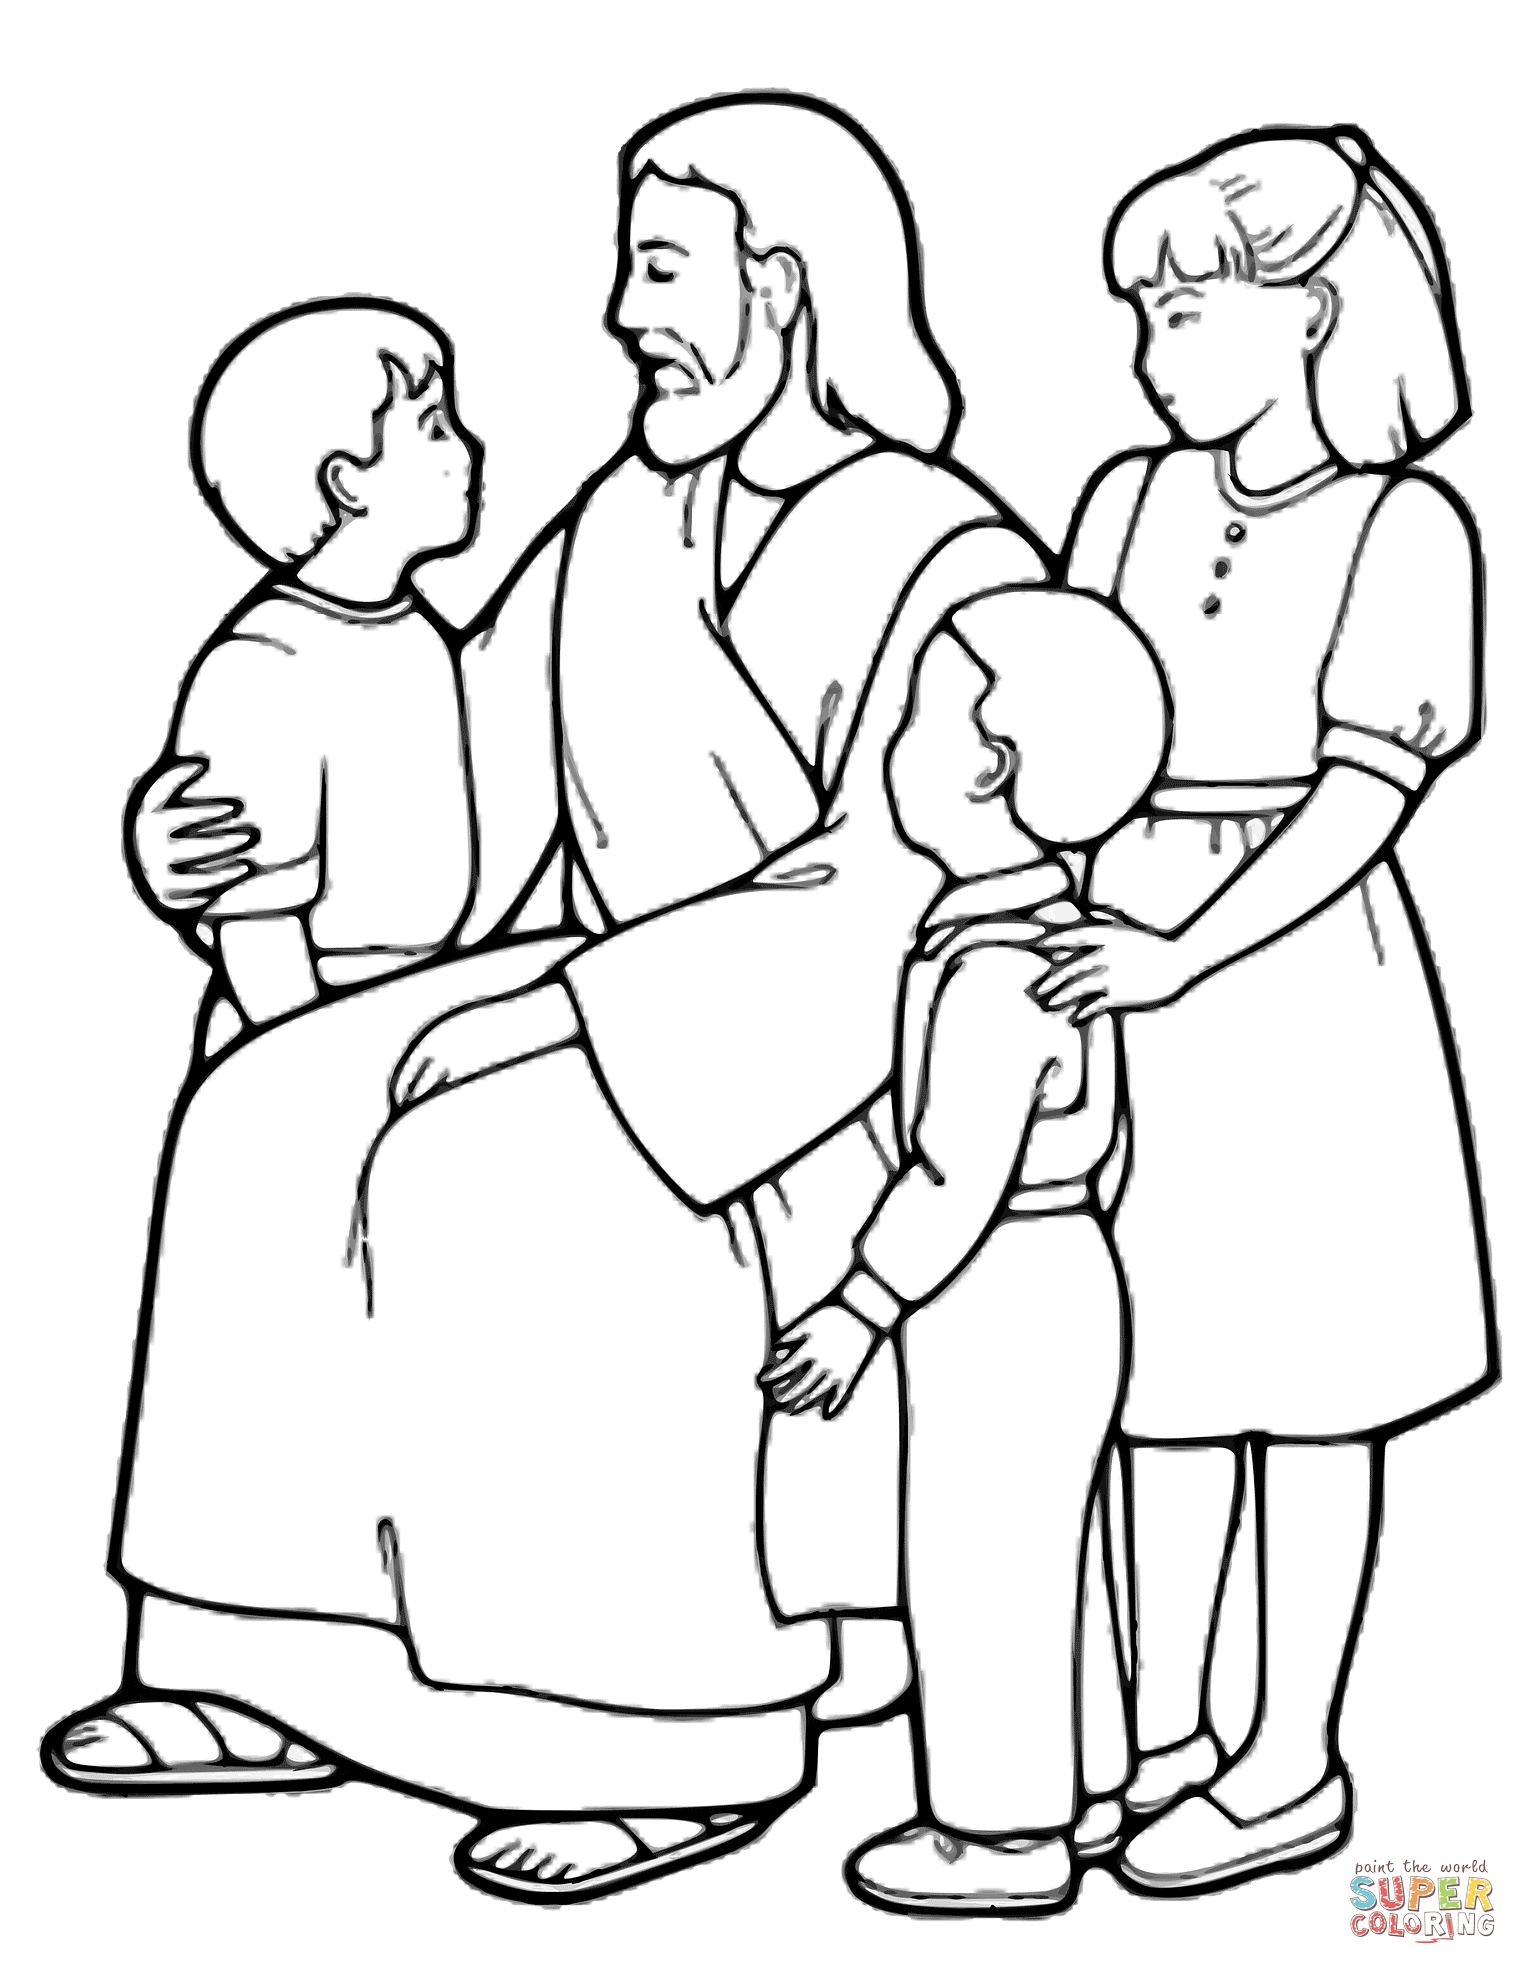 Jesus Coloring Page Free Coloring Pages Download | Xsibe bible ...